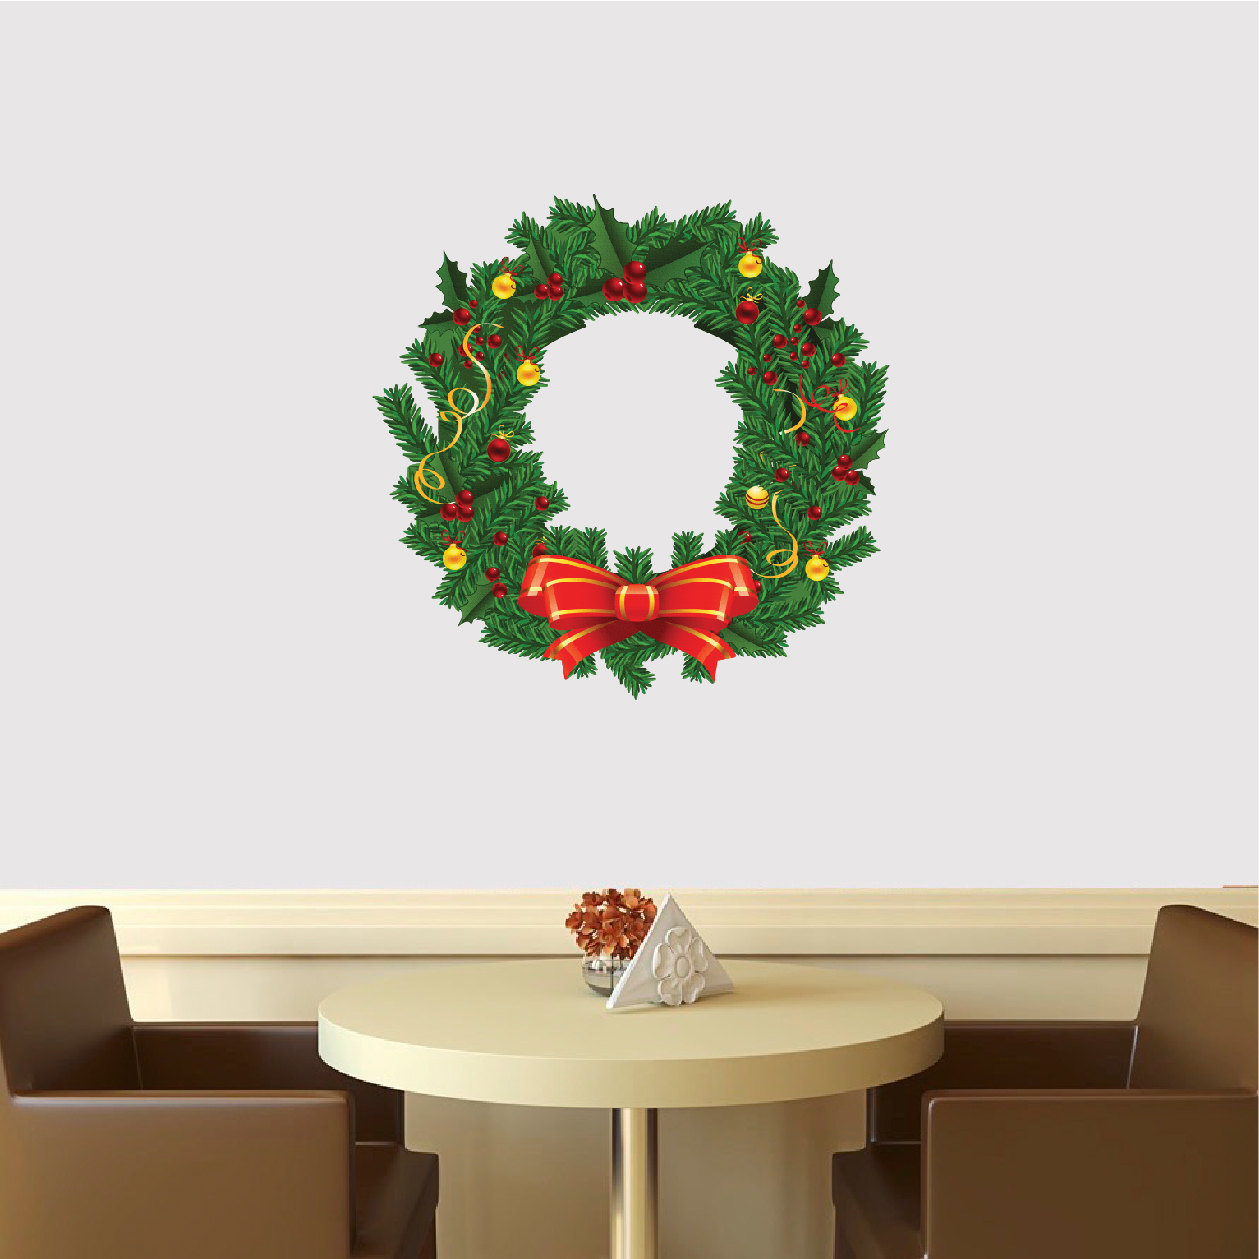 Pictures Wall Decor Ideas Christmas Wreath Wall Decal Mural Christmas Wreath Wall